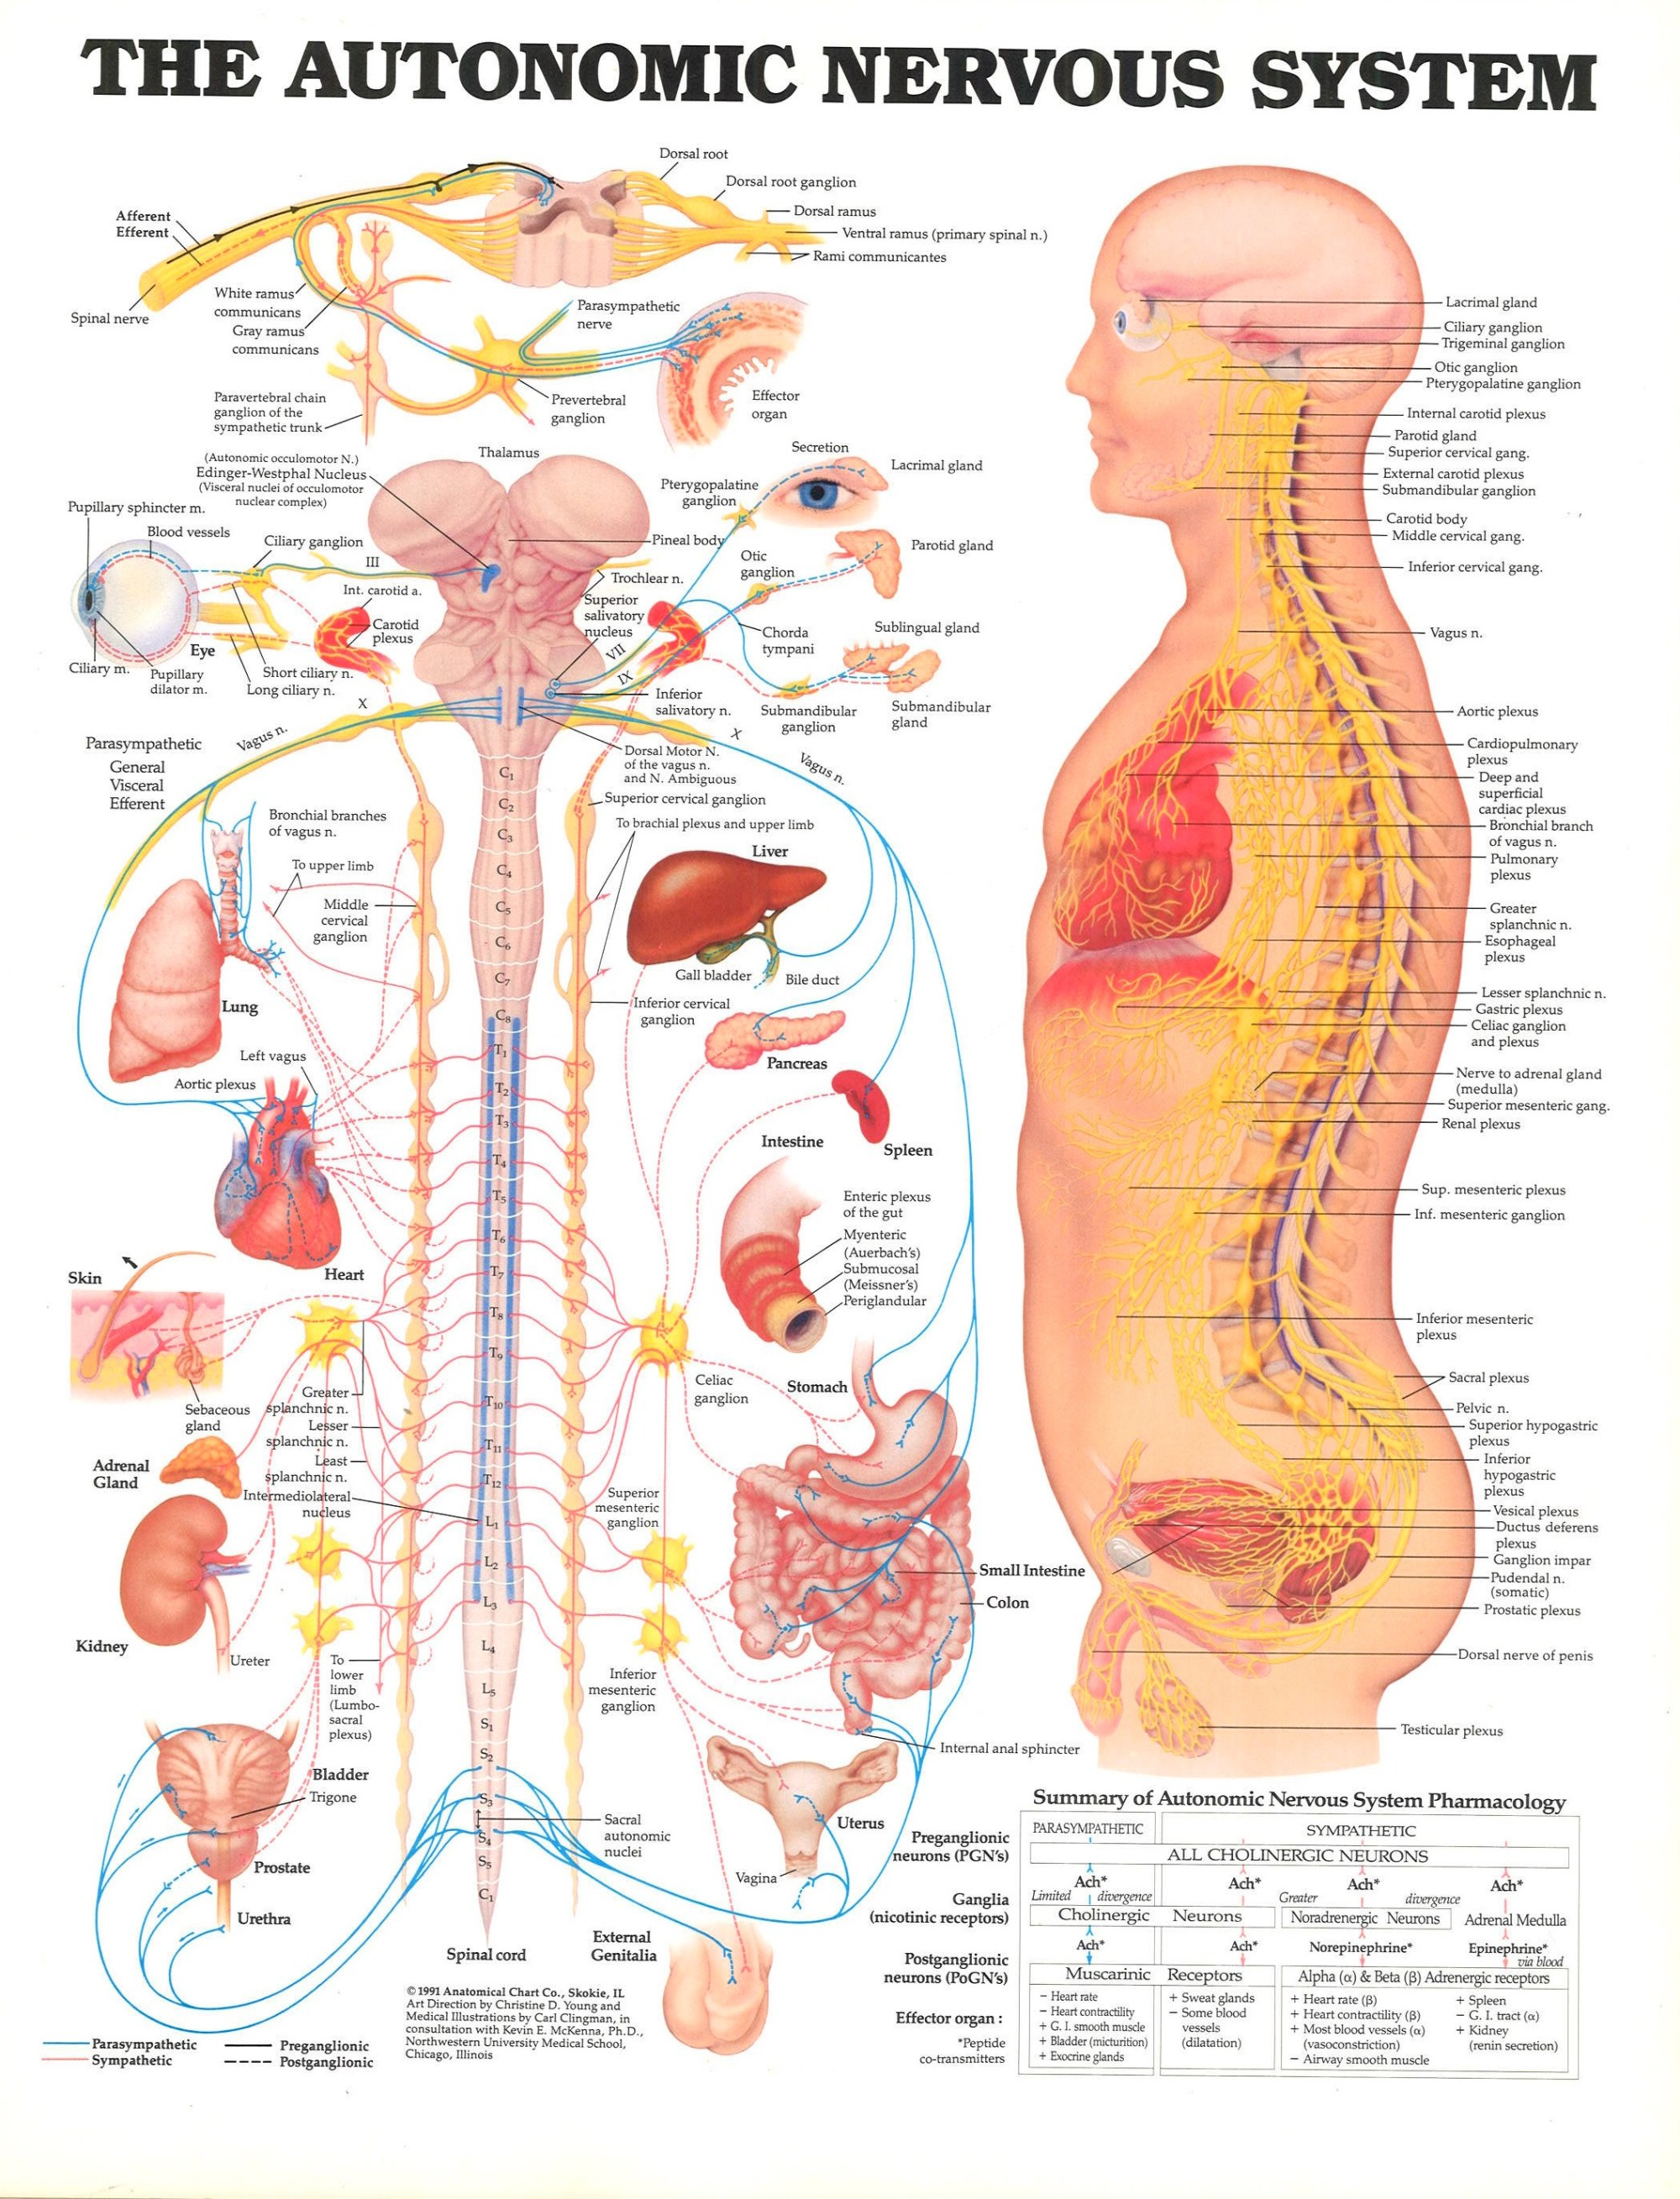 hight resolution of 1991 anatomical chart co skokie il art direction by christine d